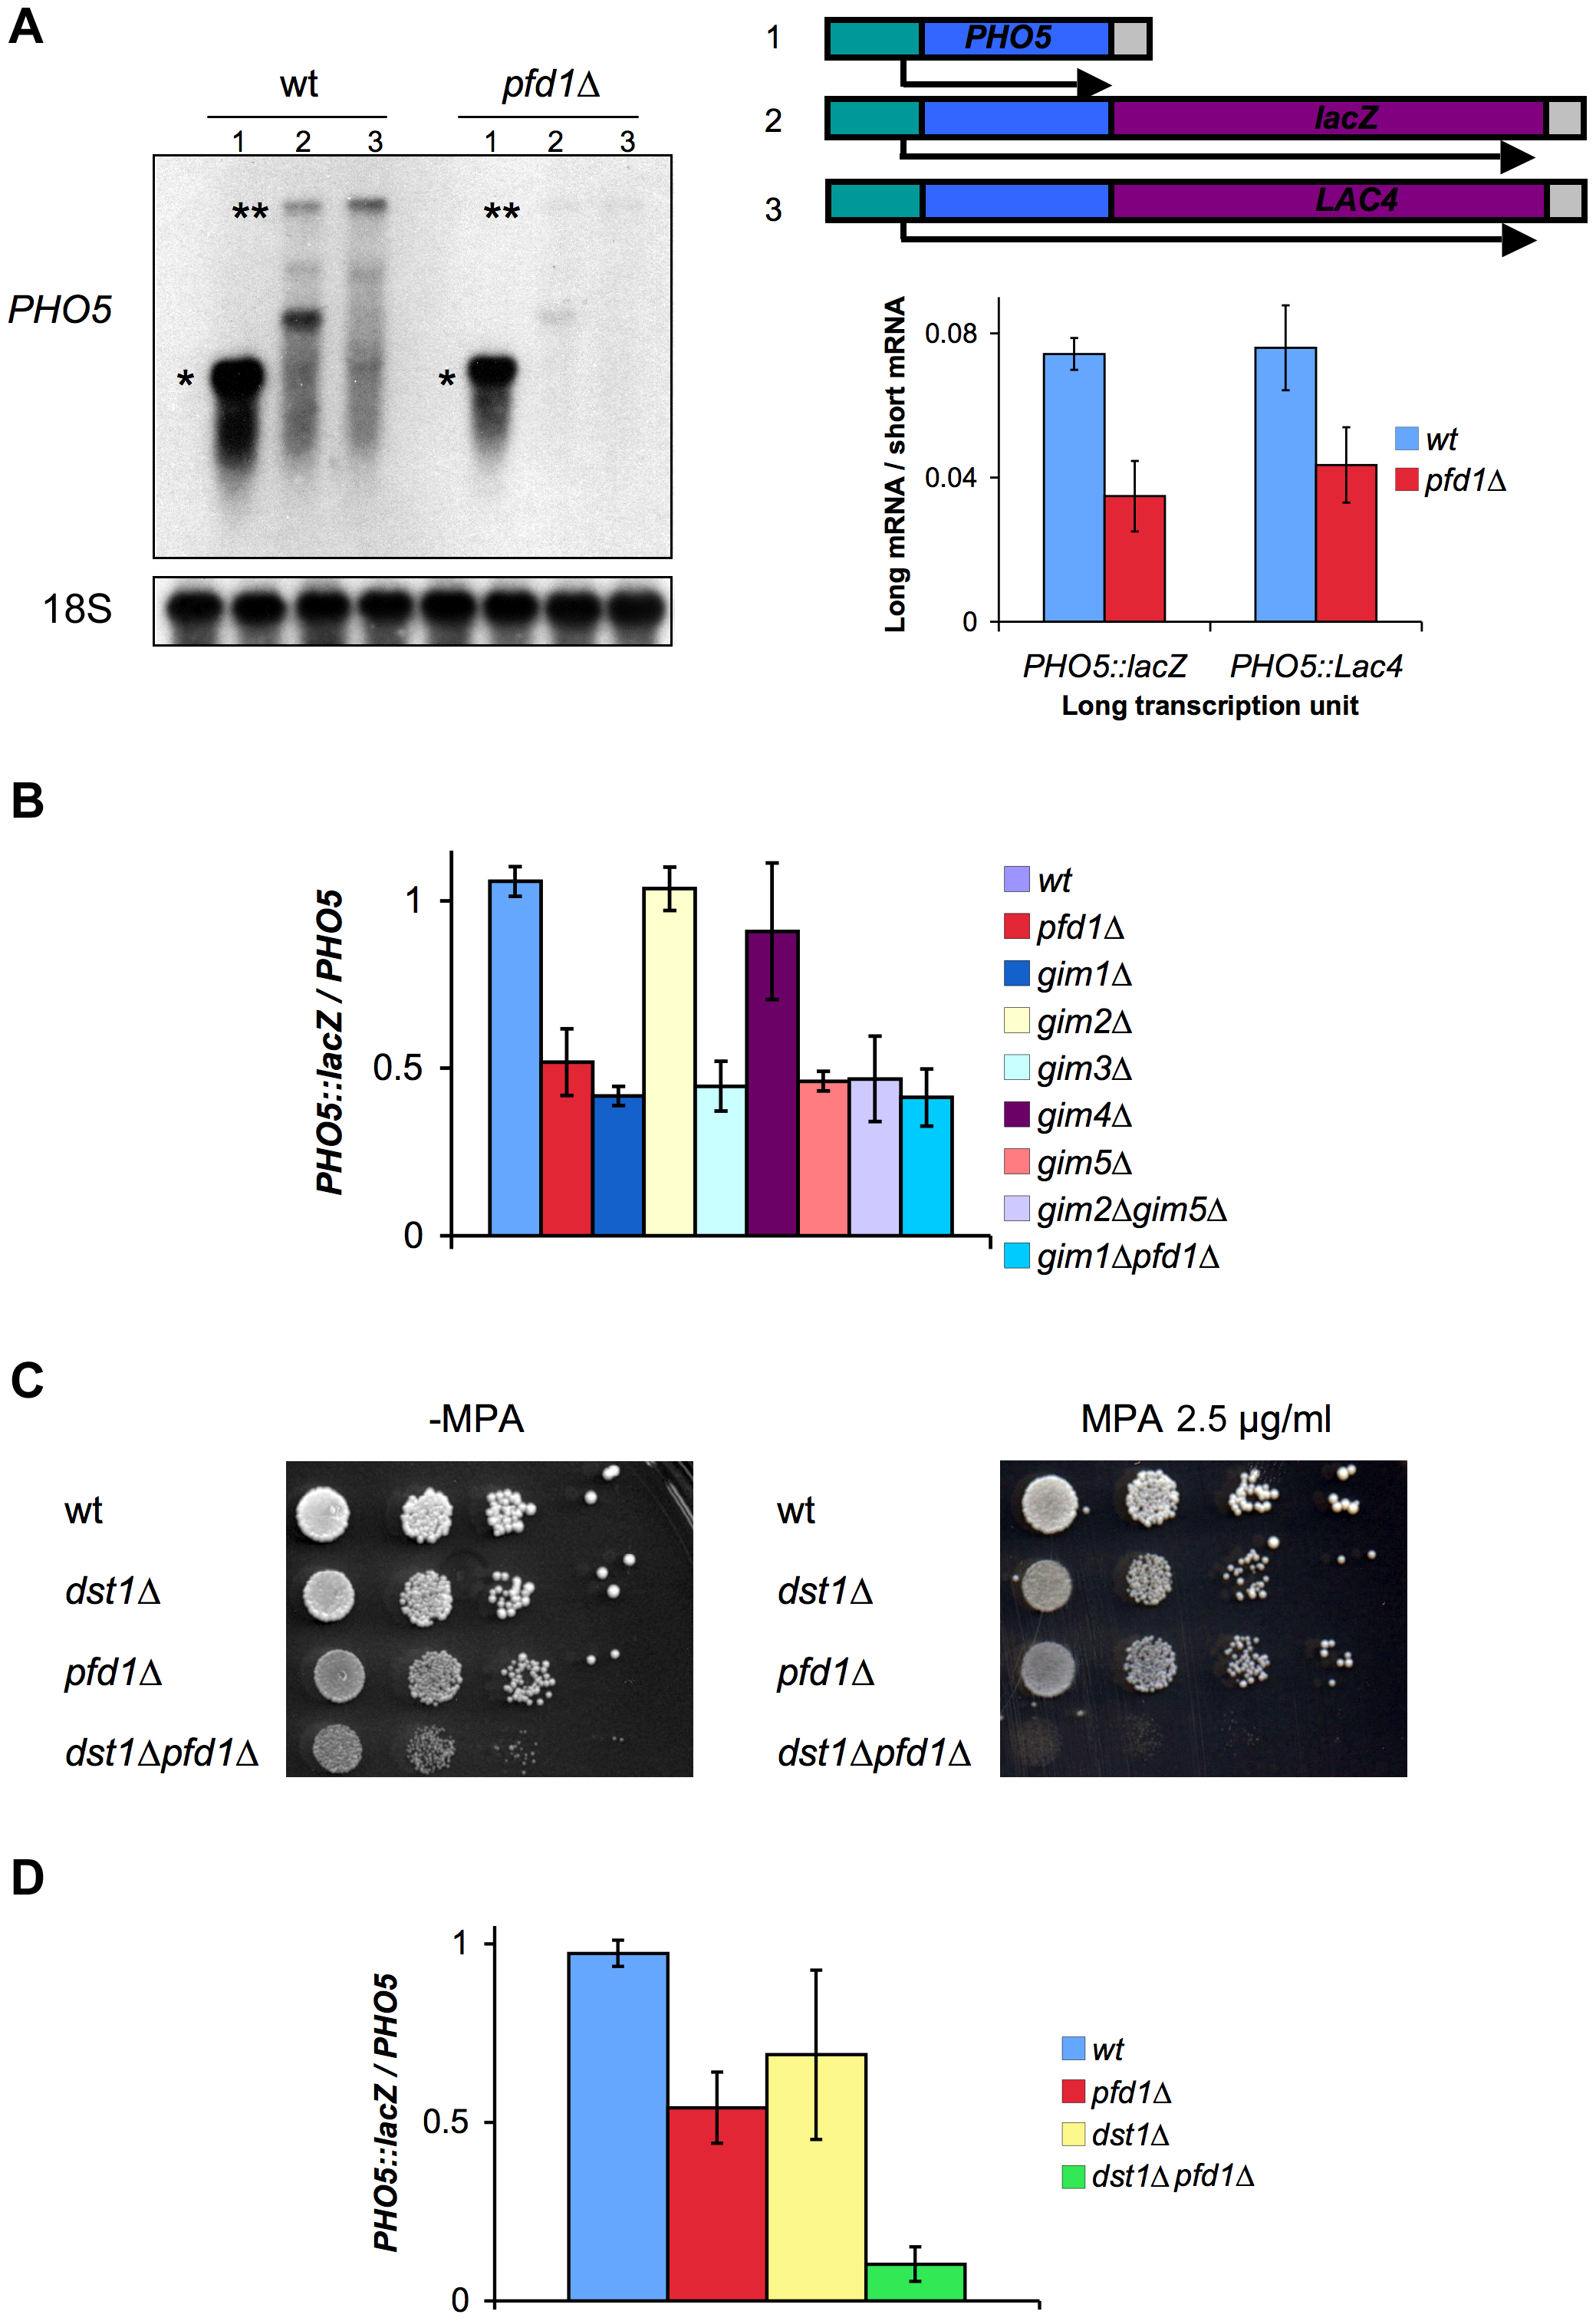 Prefoldin mutants exhibit transcriptional phenotypes and synthetic interactions with TFIIS.